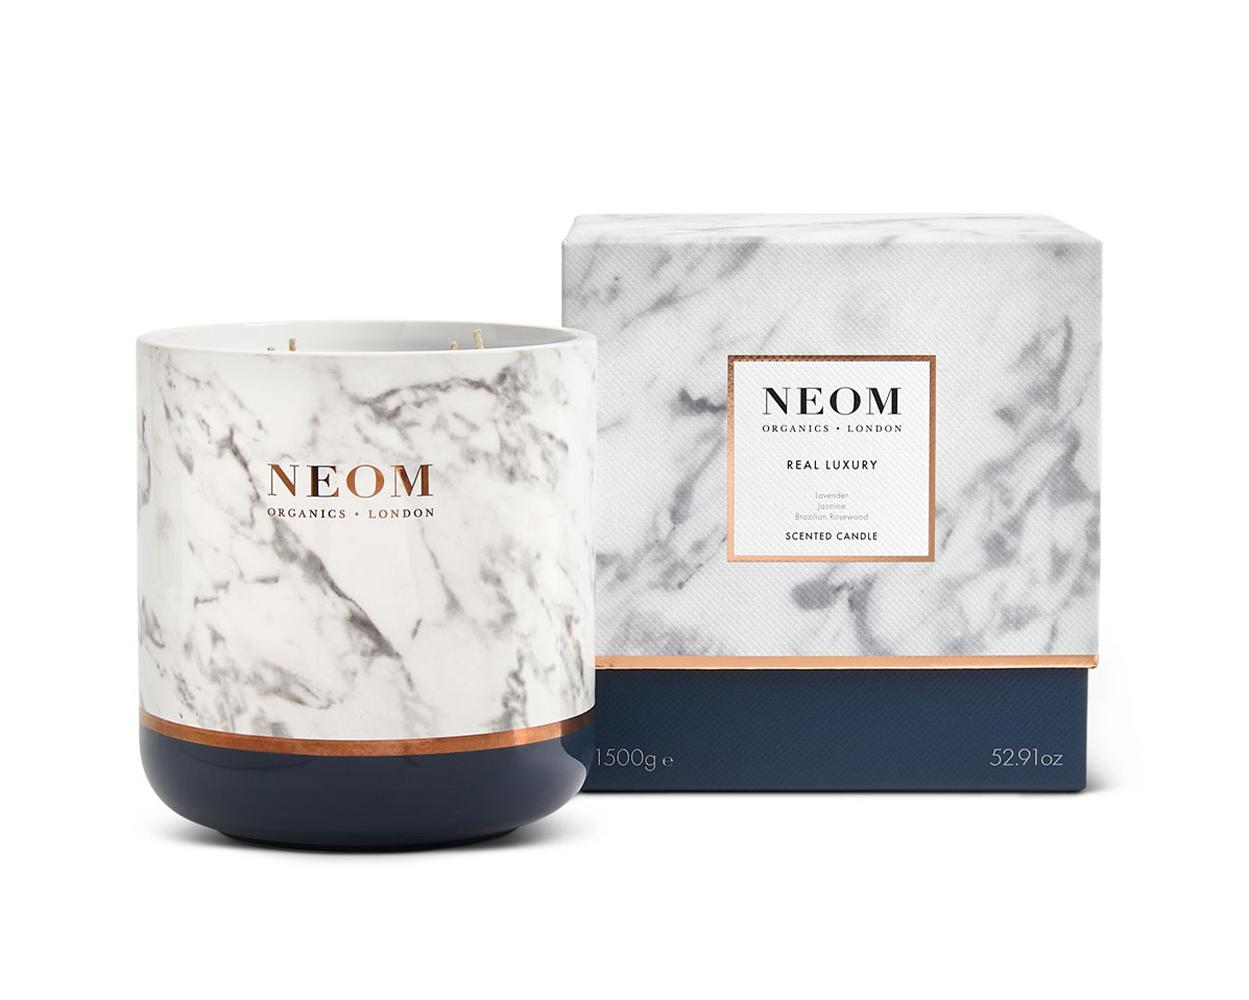 The Real Luxury Candle contains 24 essential oils including lavender, jasmine and ylang ylang